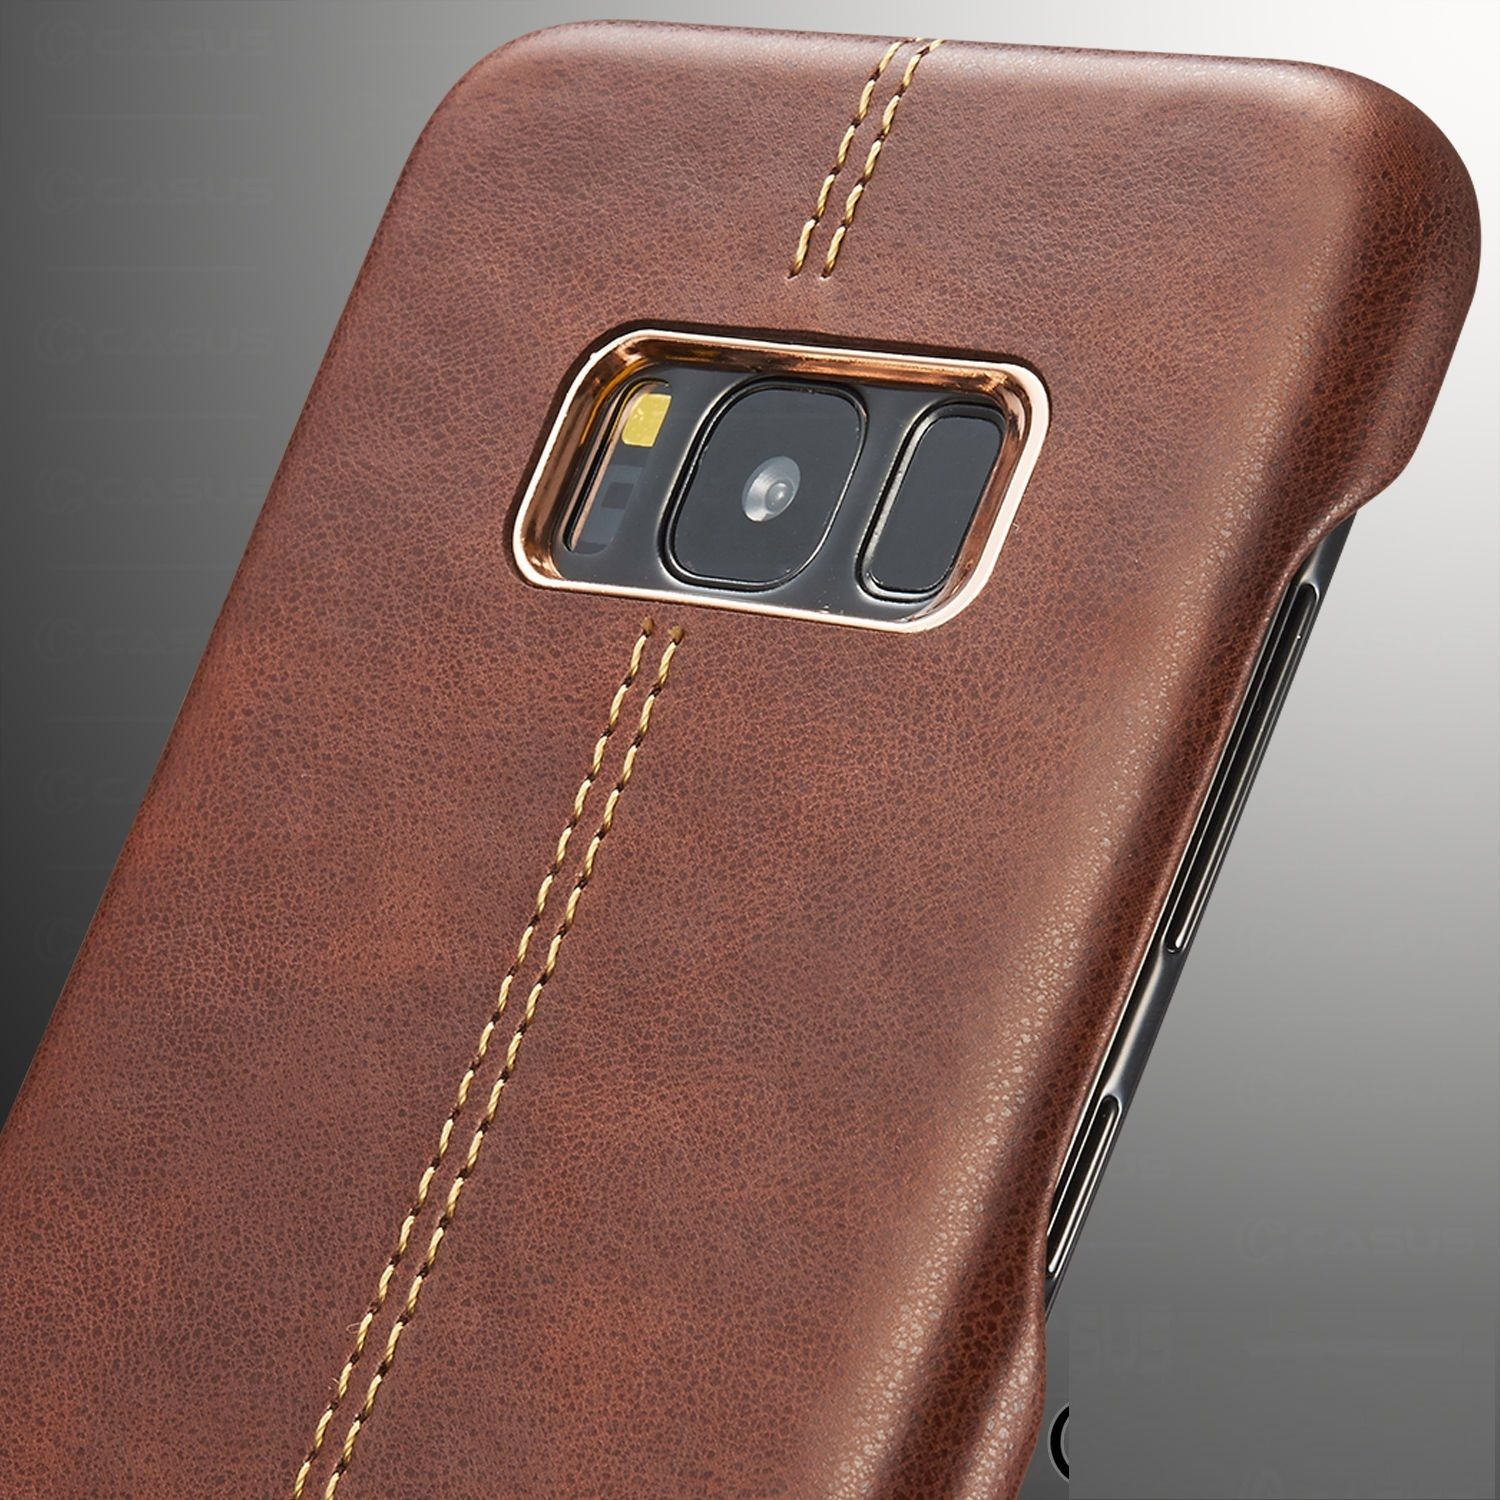 Leather Back Metal Bumper Frame Skin Case Cover for Samsung Galaxy S8 / S8+ Plus